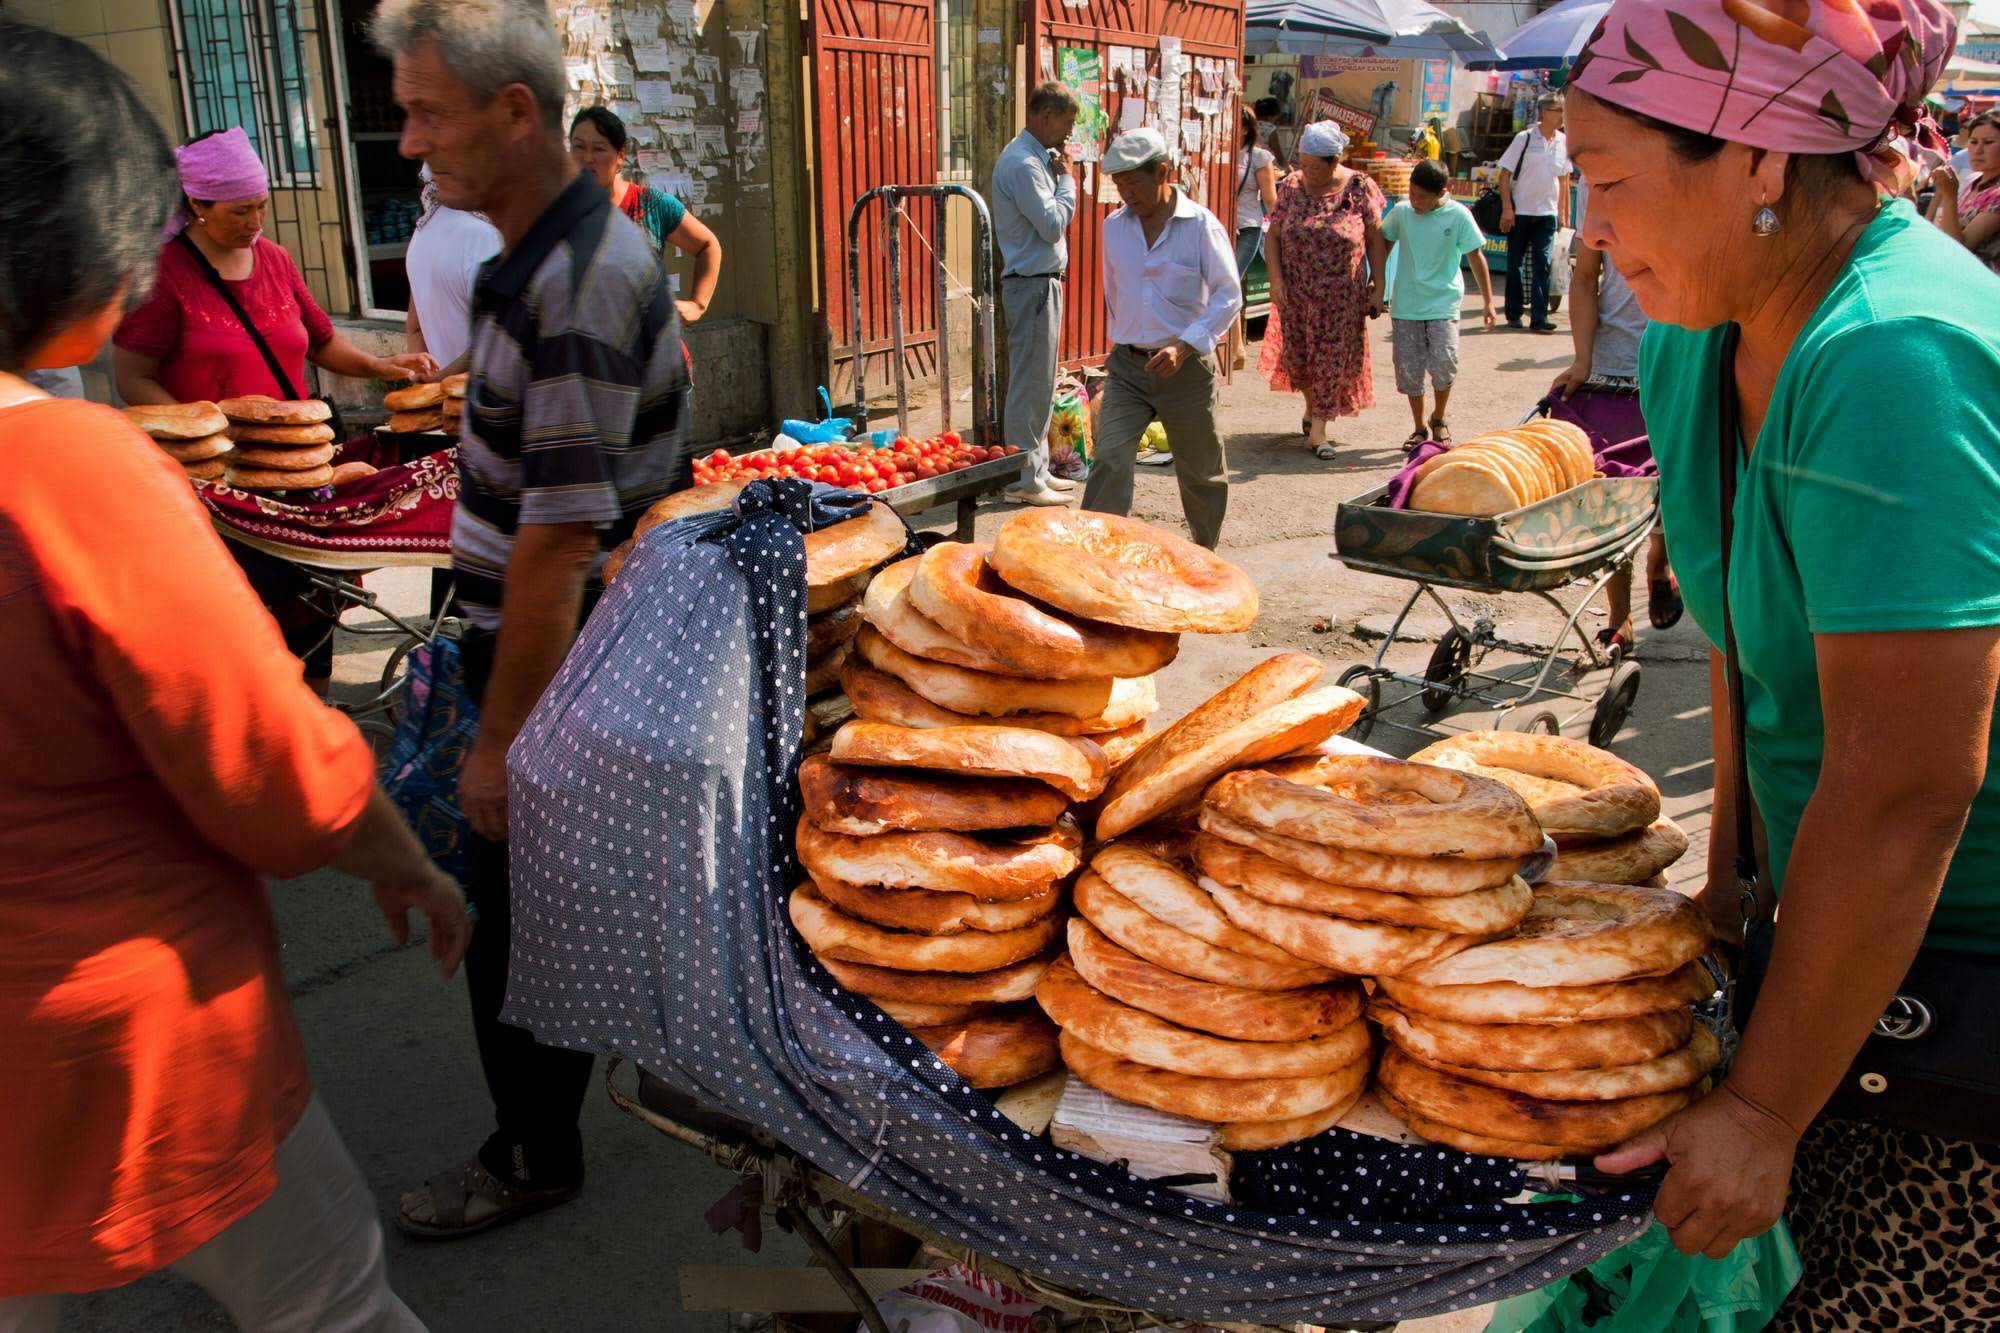 Women selling traditional Central Asian bread at popular Osh market bazaar in Bishkek, Kyrgyzstan